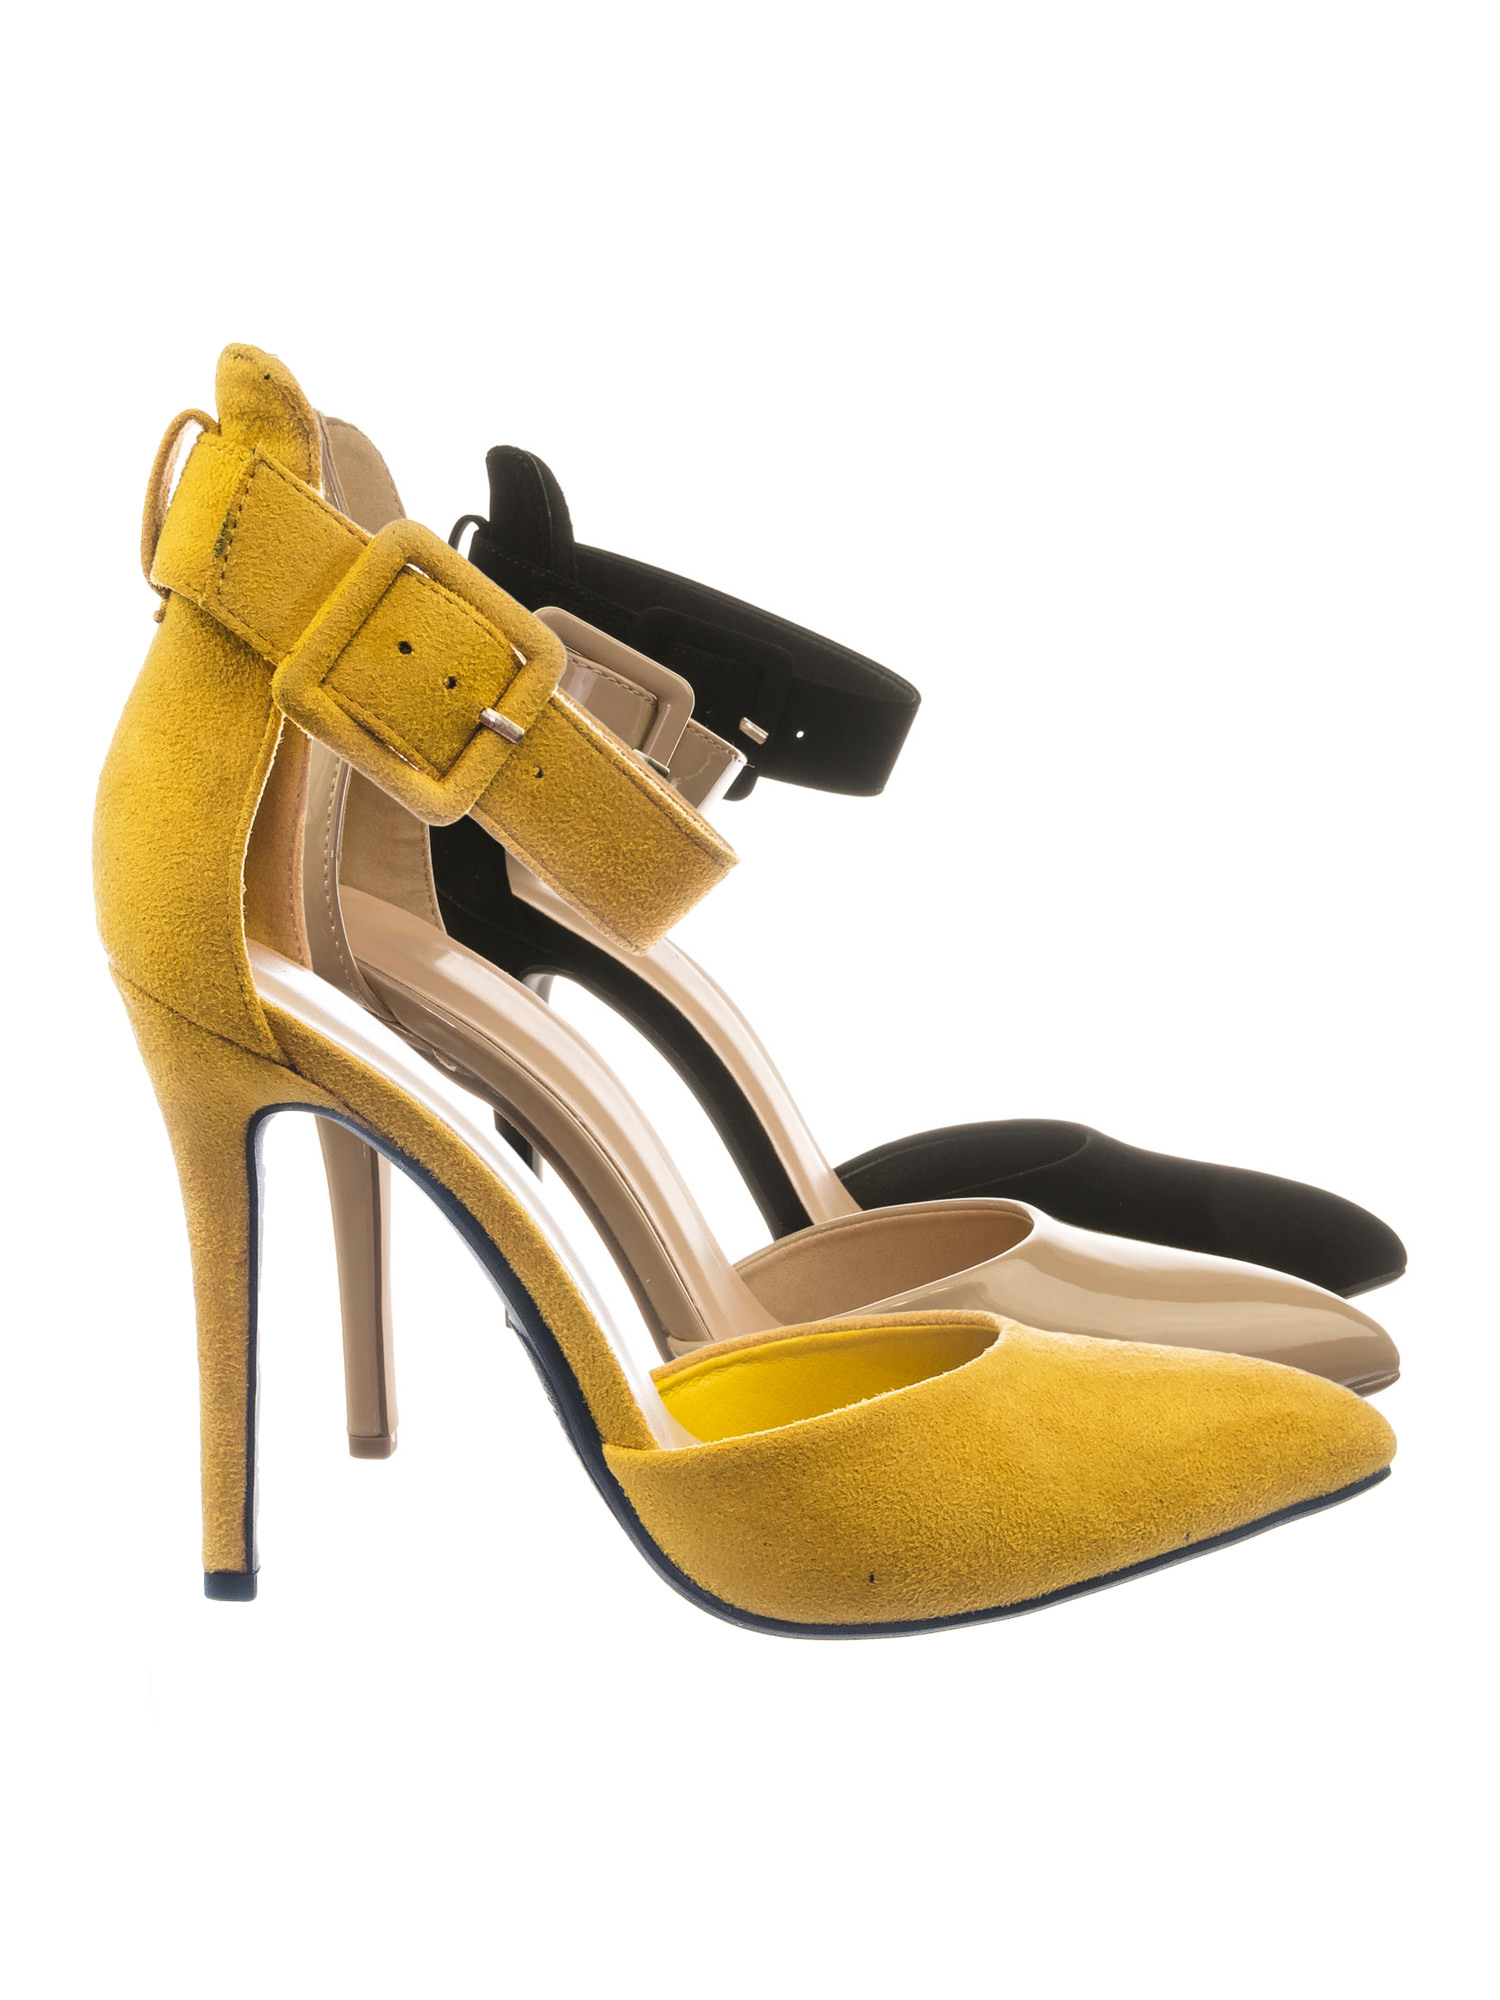 Sweep by Speed Limit 98, Ankle Strap Pointed Toe Dress Pump w Double Open Shank D'Orsay Cutout